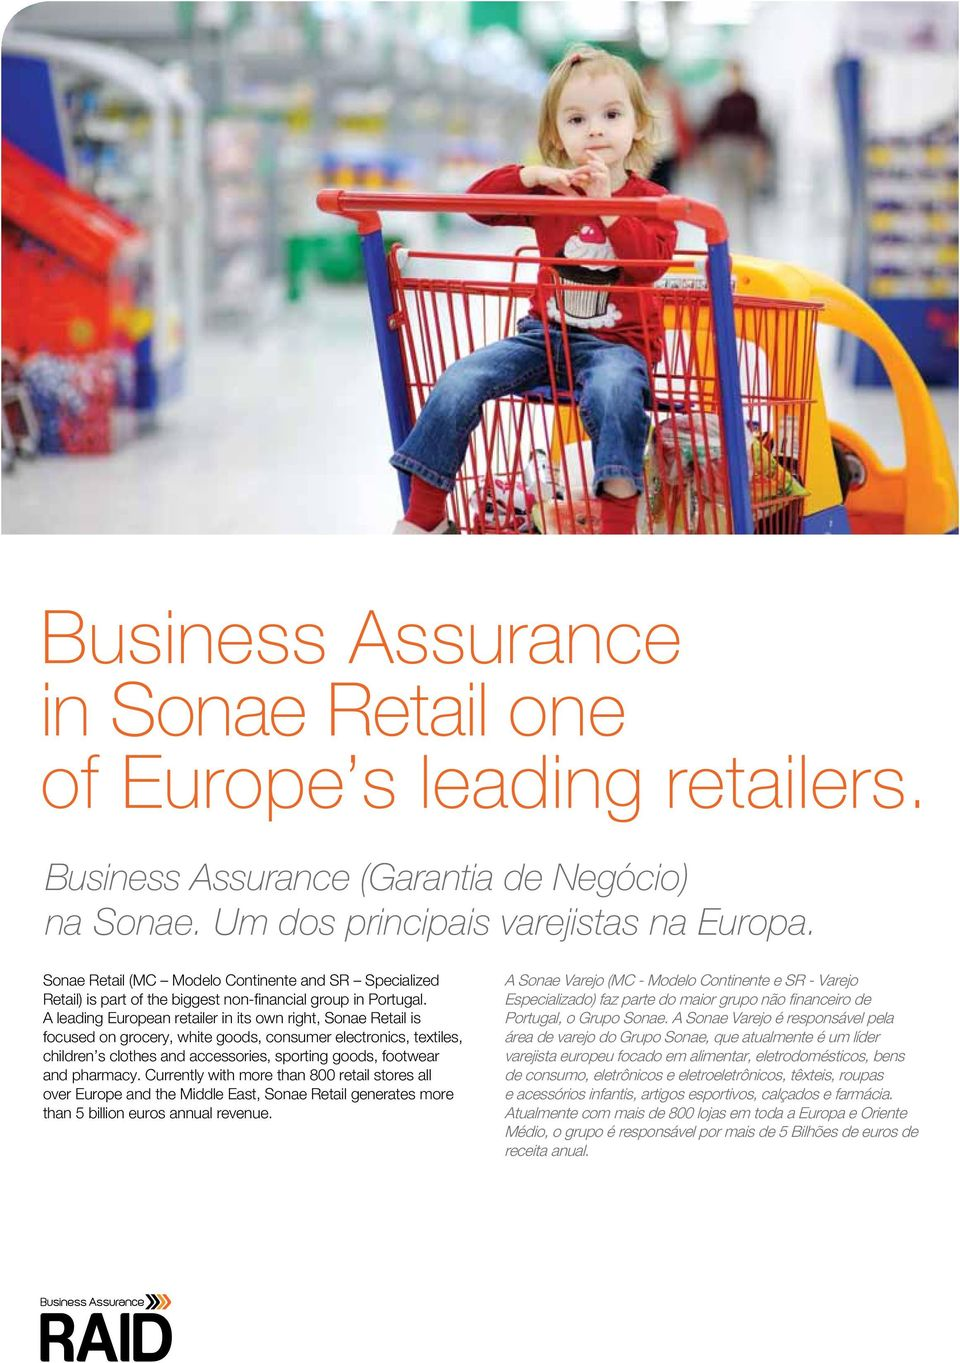 A leading European retailer in its own right, Sonae Retail is focused on grocery, white goods, consumer electronics, textiles, children s clothes and accessories, sporting goods, footwear and